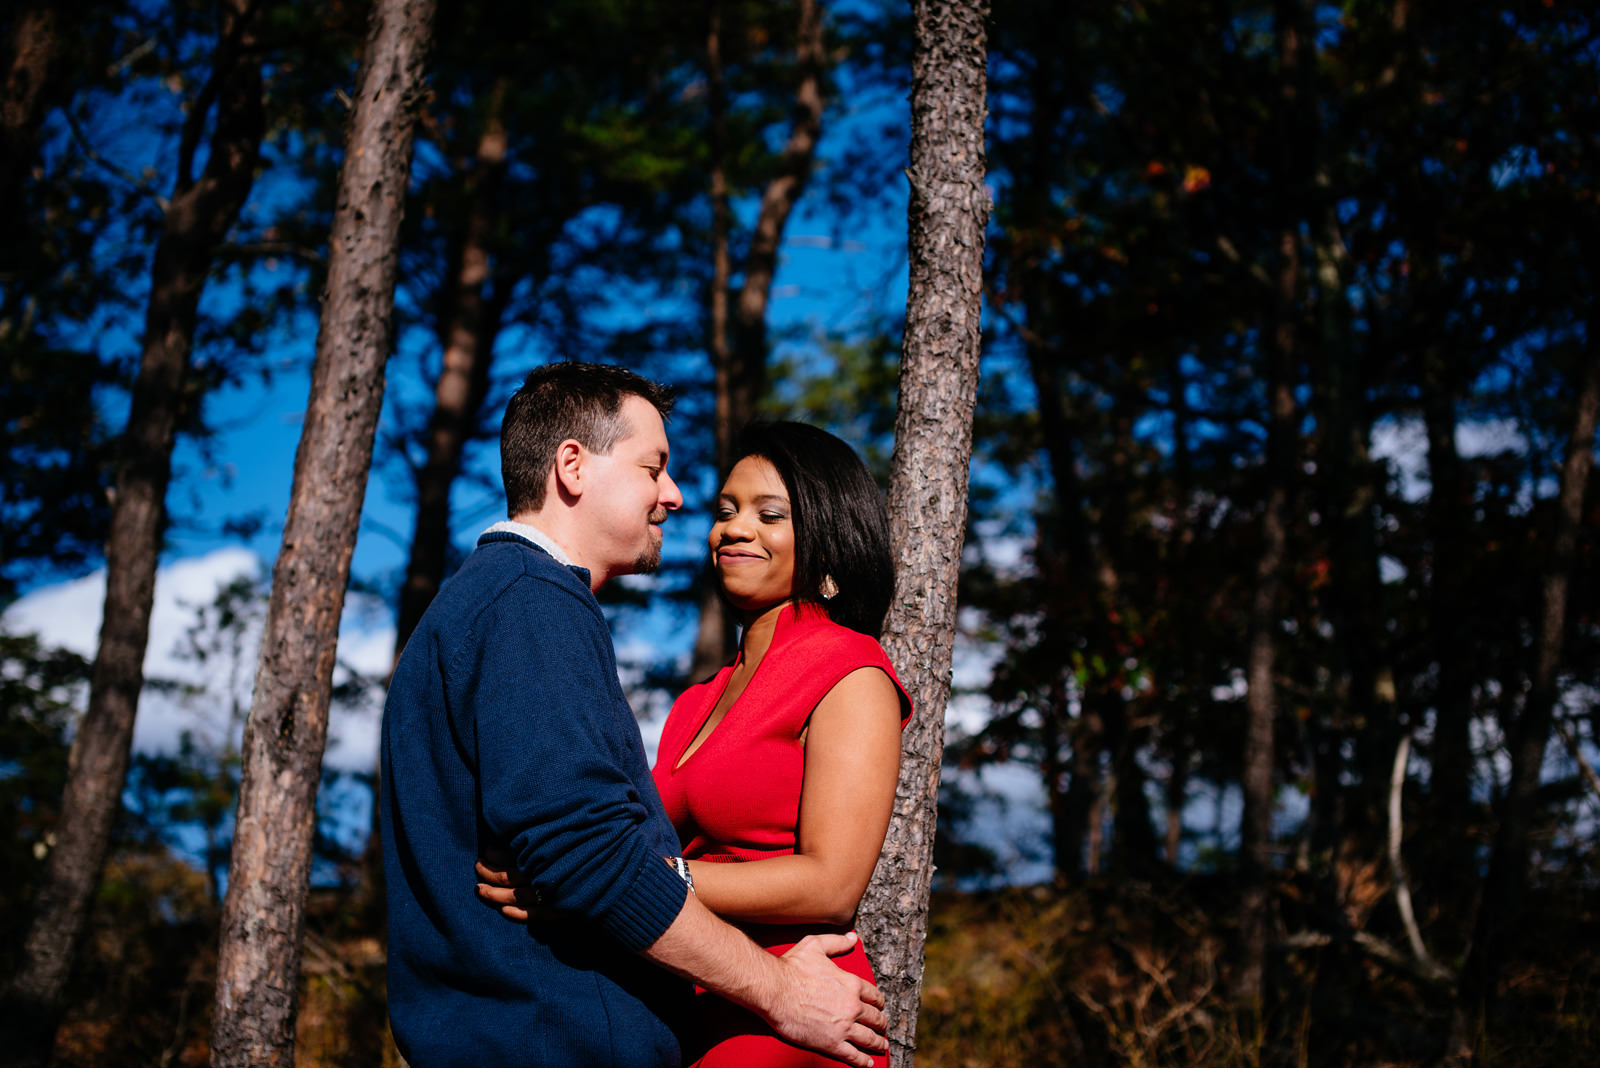 outdoorsy engagement photos in wv